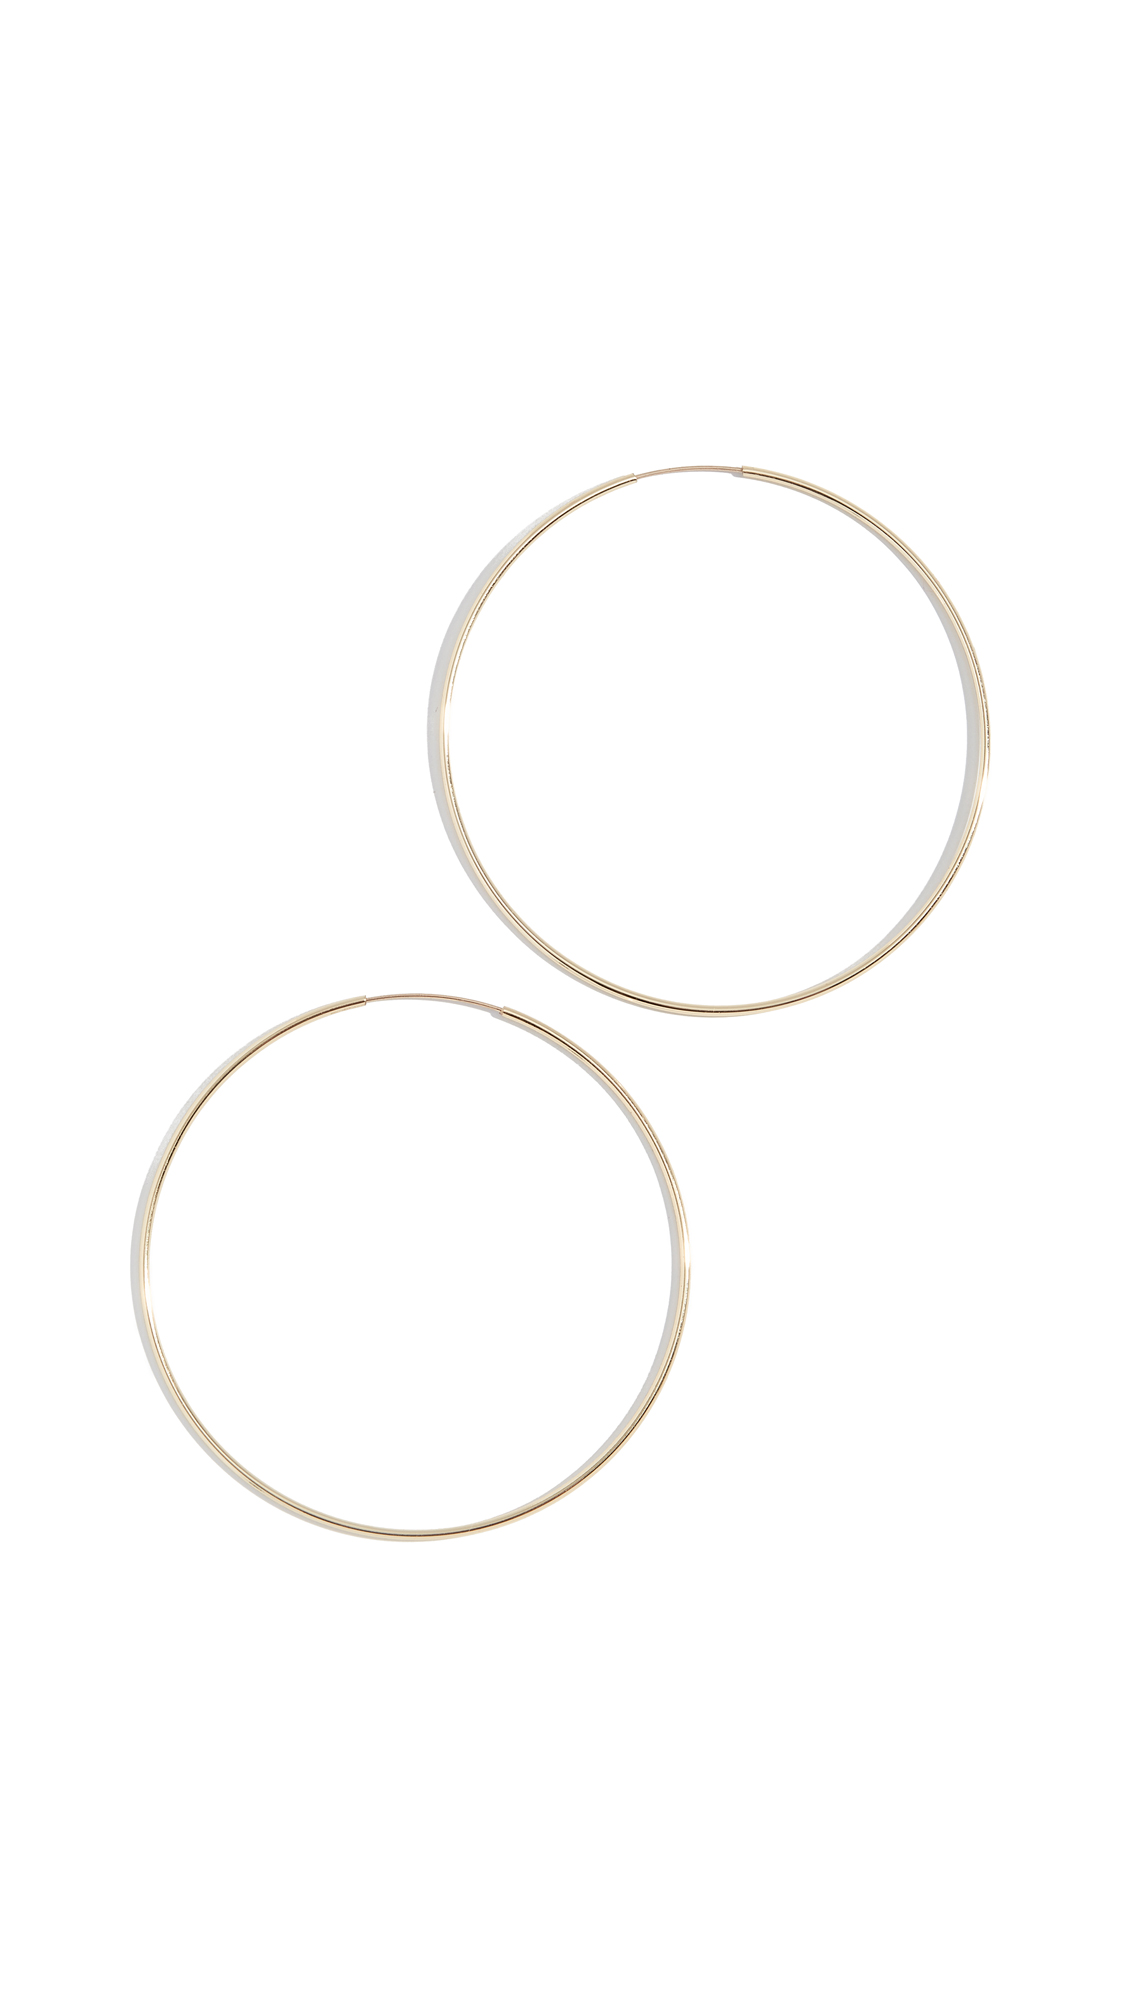 JULES SMITH Lola Hoops in Yellow Gold